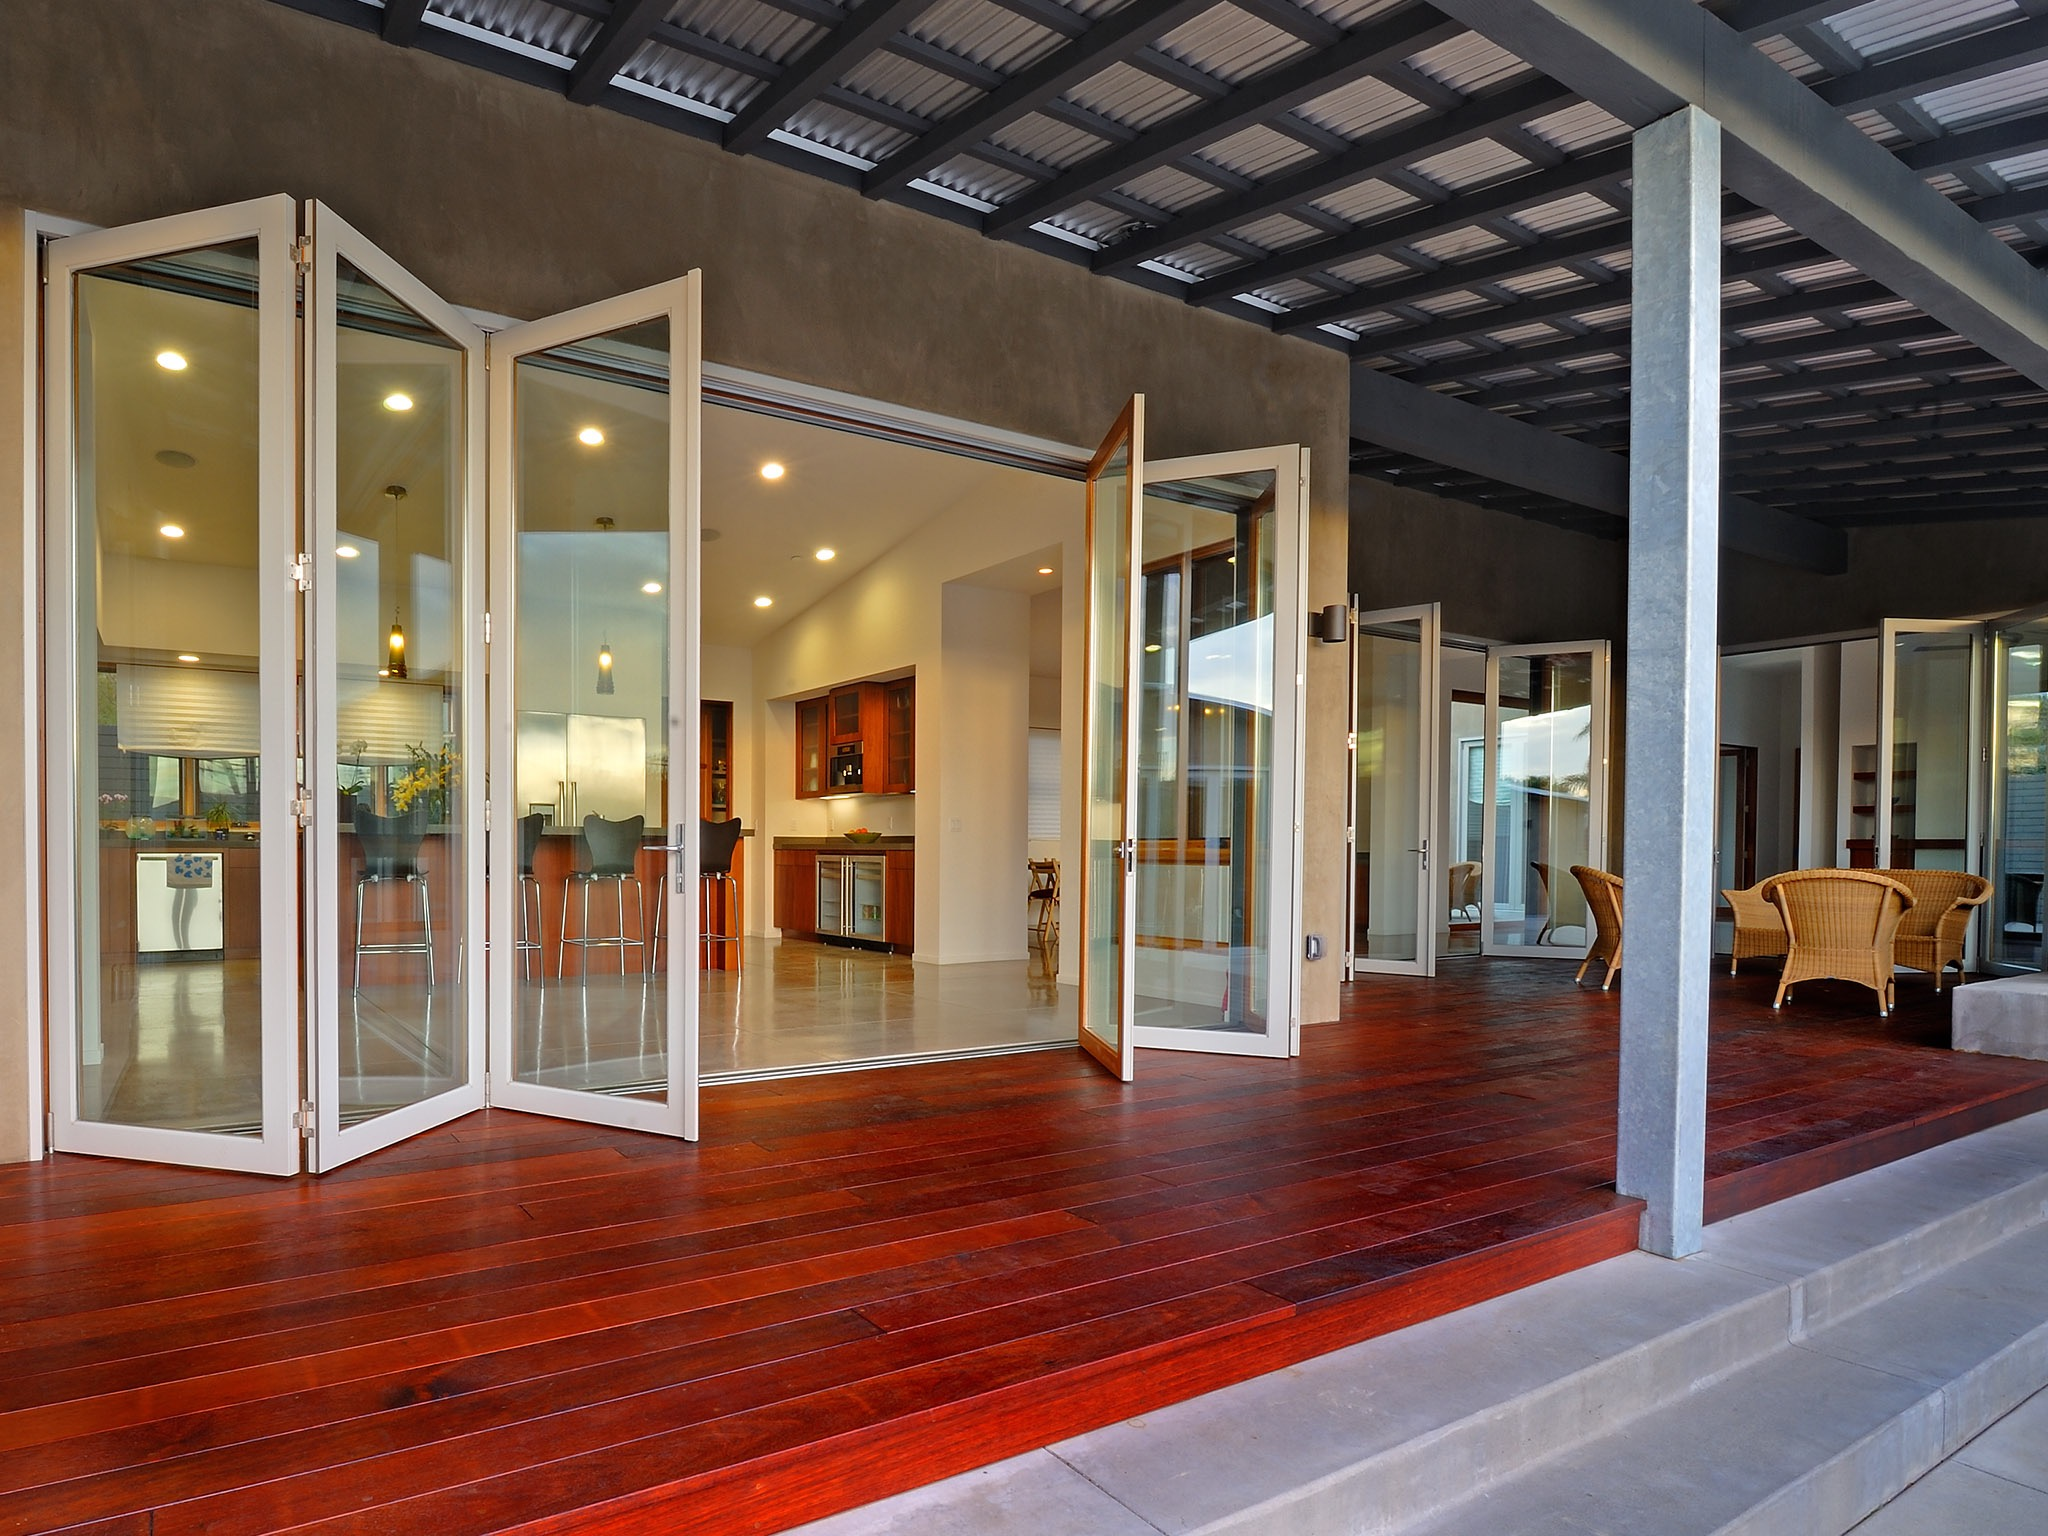 Modern Large Bifold Glass Doors Open To Deck (Image 17 of 24)